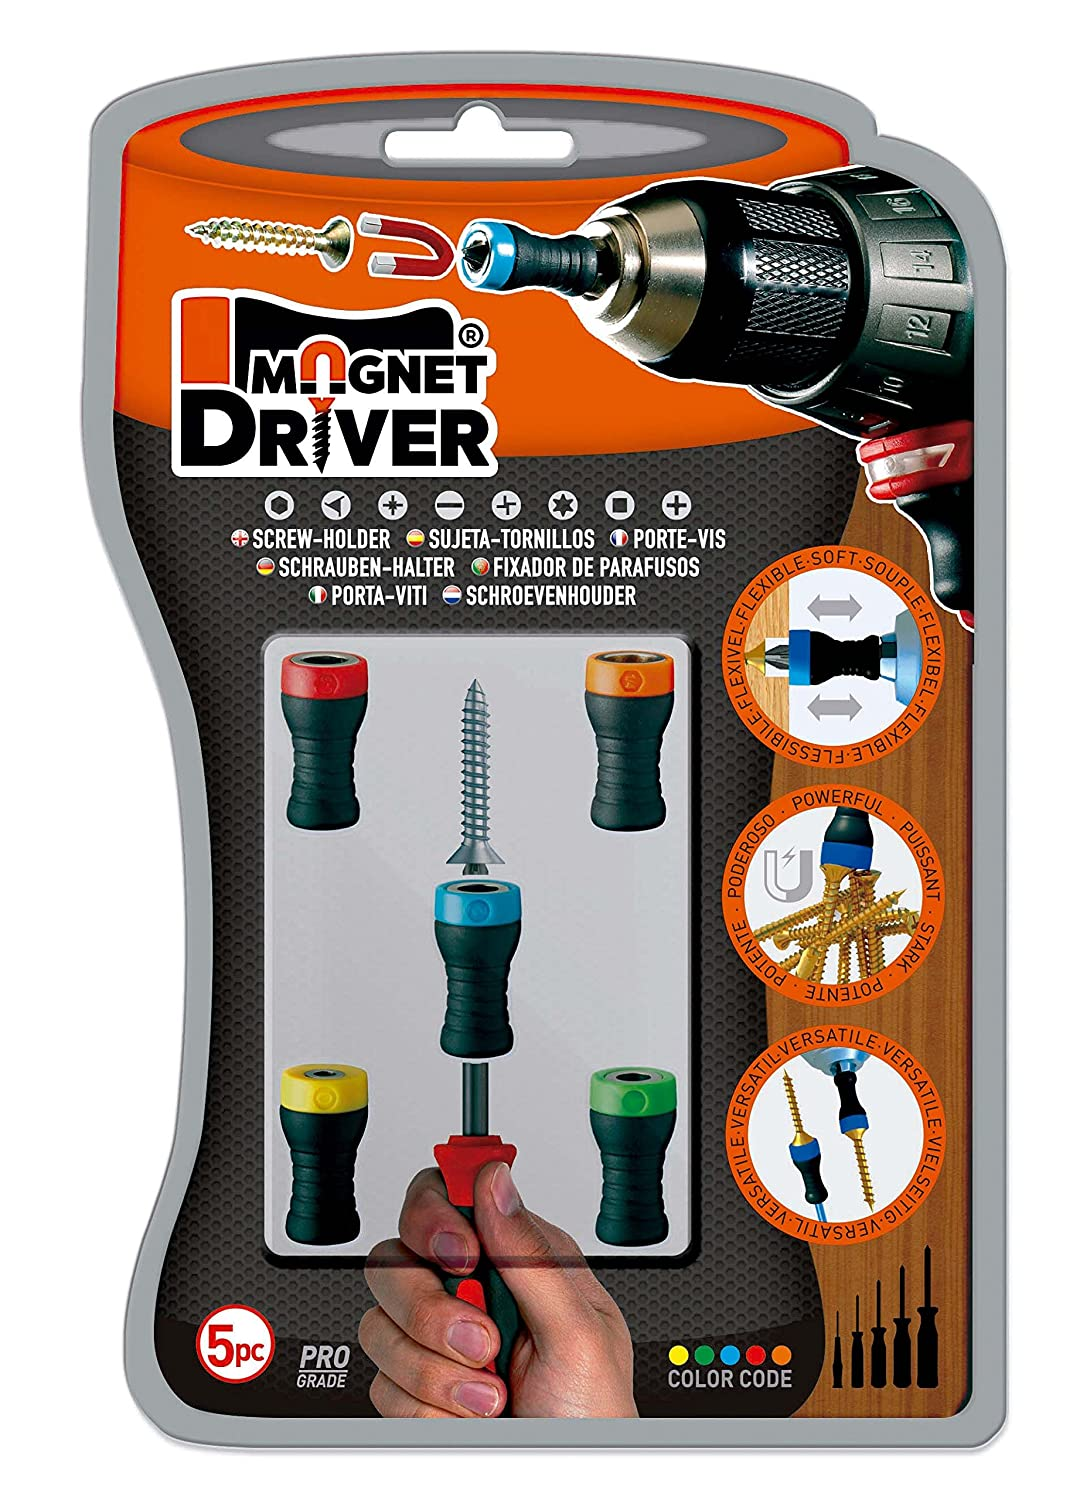 SET 17 MAGNET DRIVER® Allows Countersinking Magnetic Screwdriver Attachment Set 17 Magnet Driver Screw-Holder by Micaton No Wobbling or Falling Screws Fits Screwdrivers and Power Bits